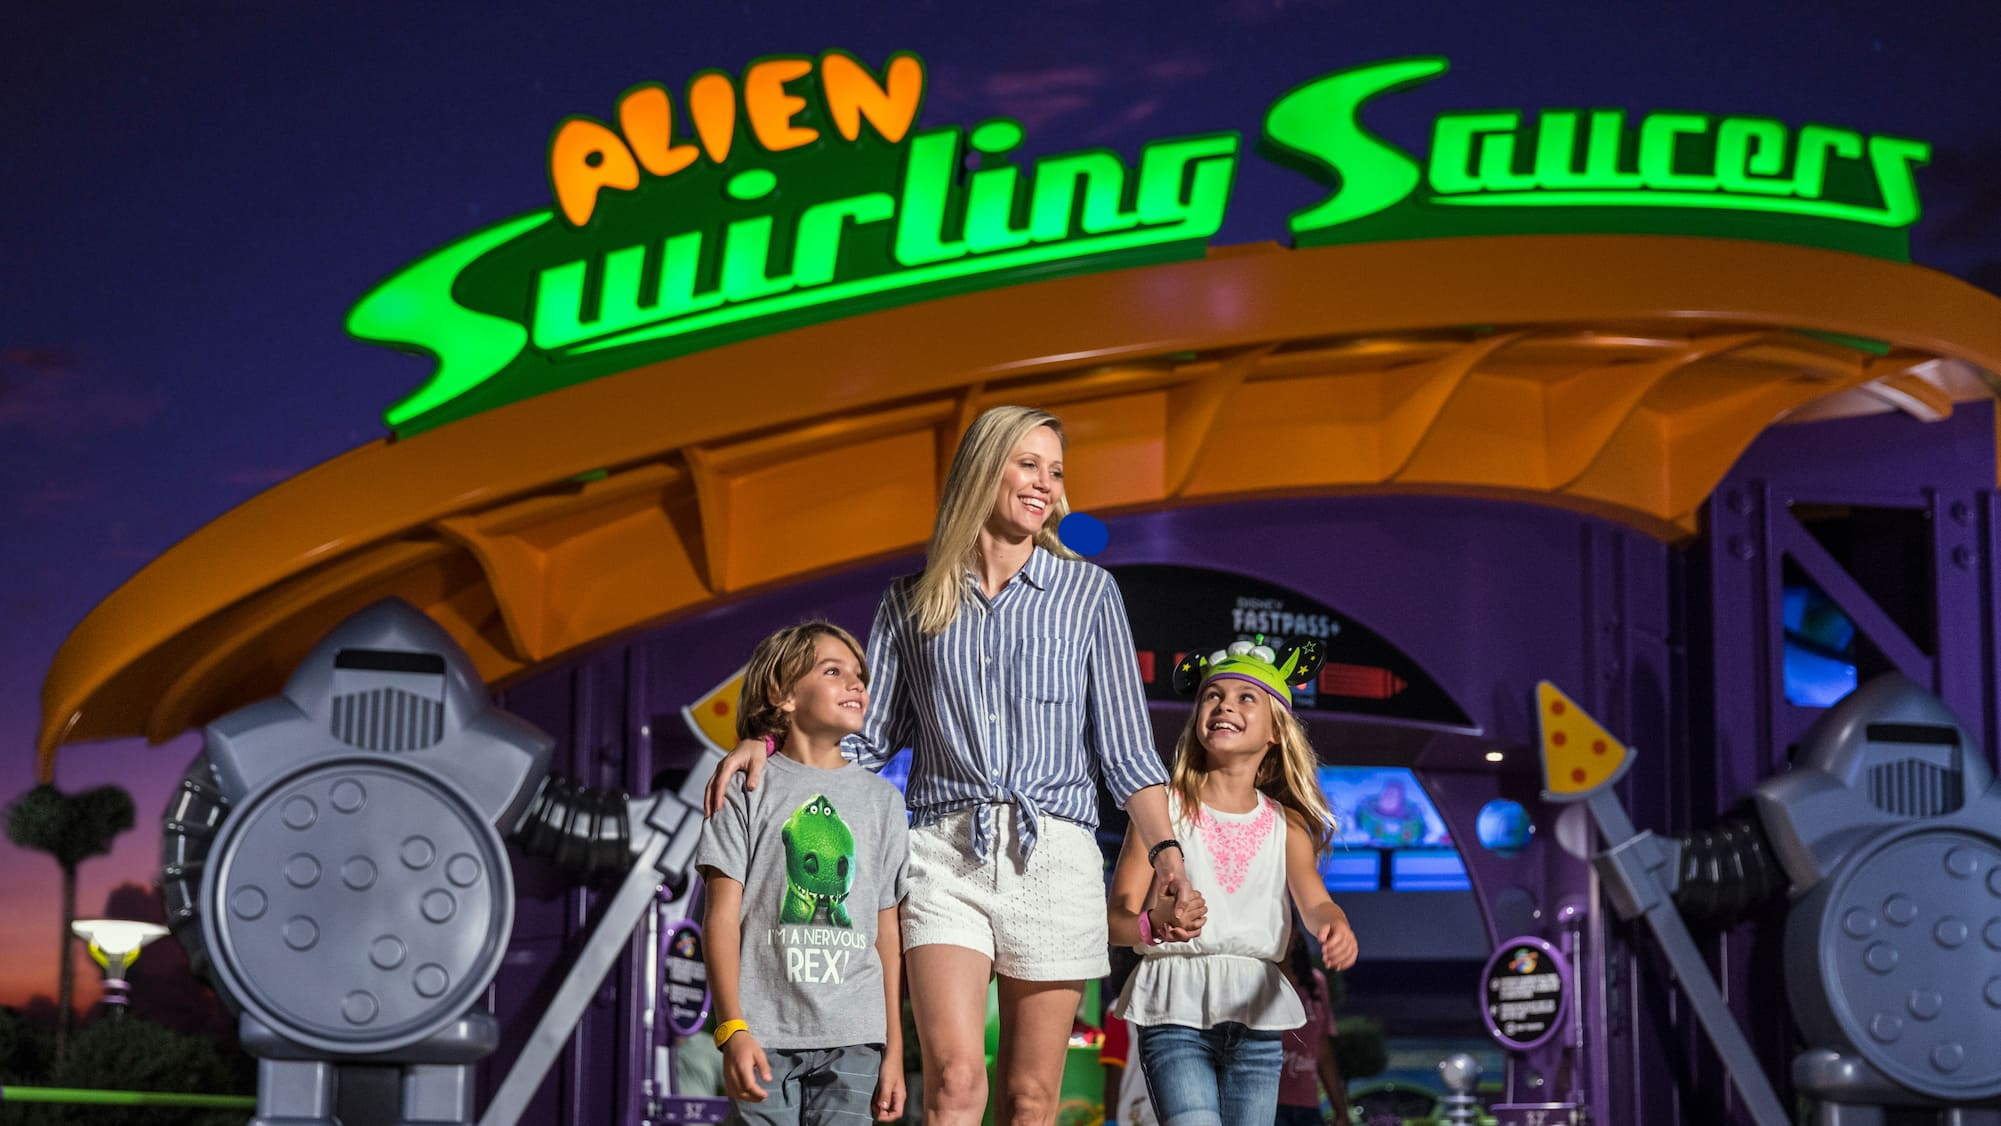 a433c2dd9e3 Alien Swirling Saucers at Toy Story Land